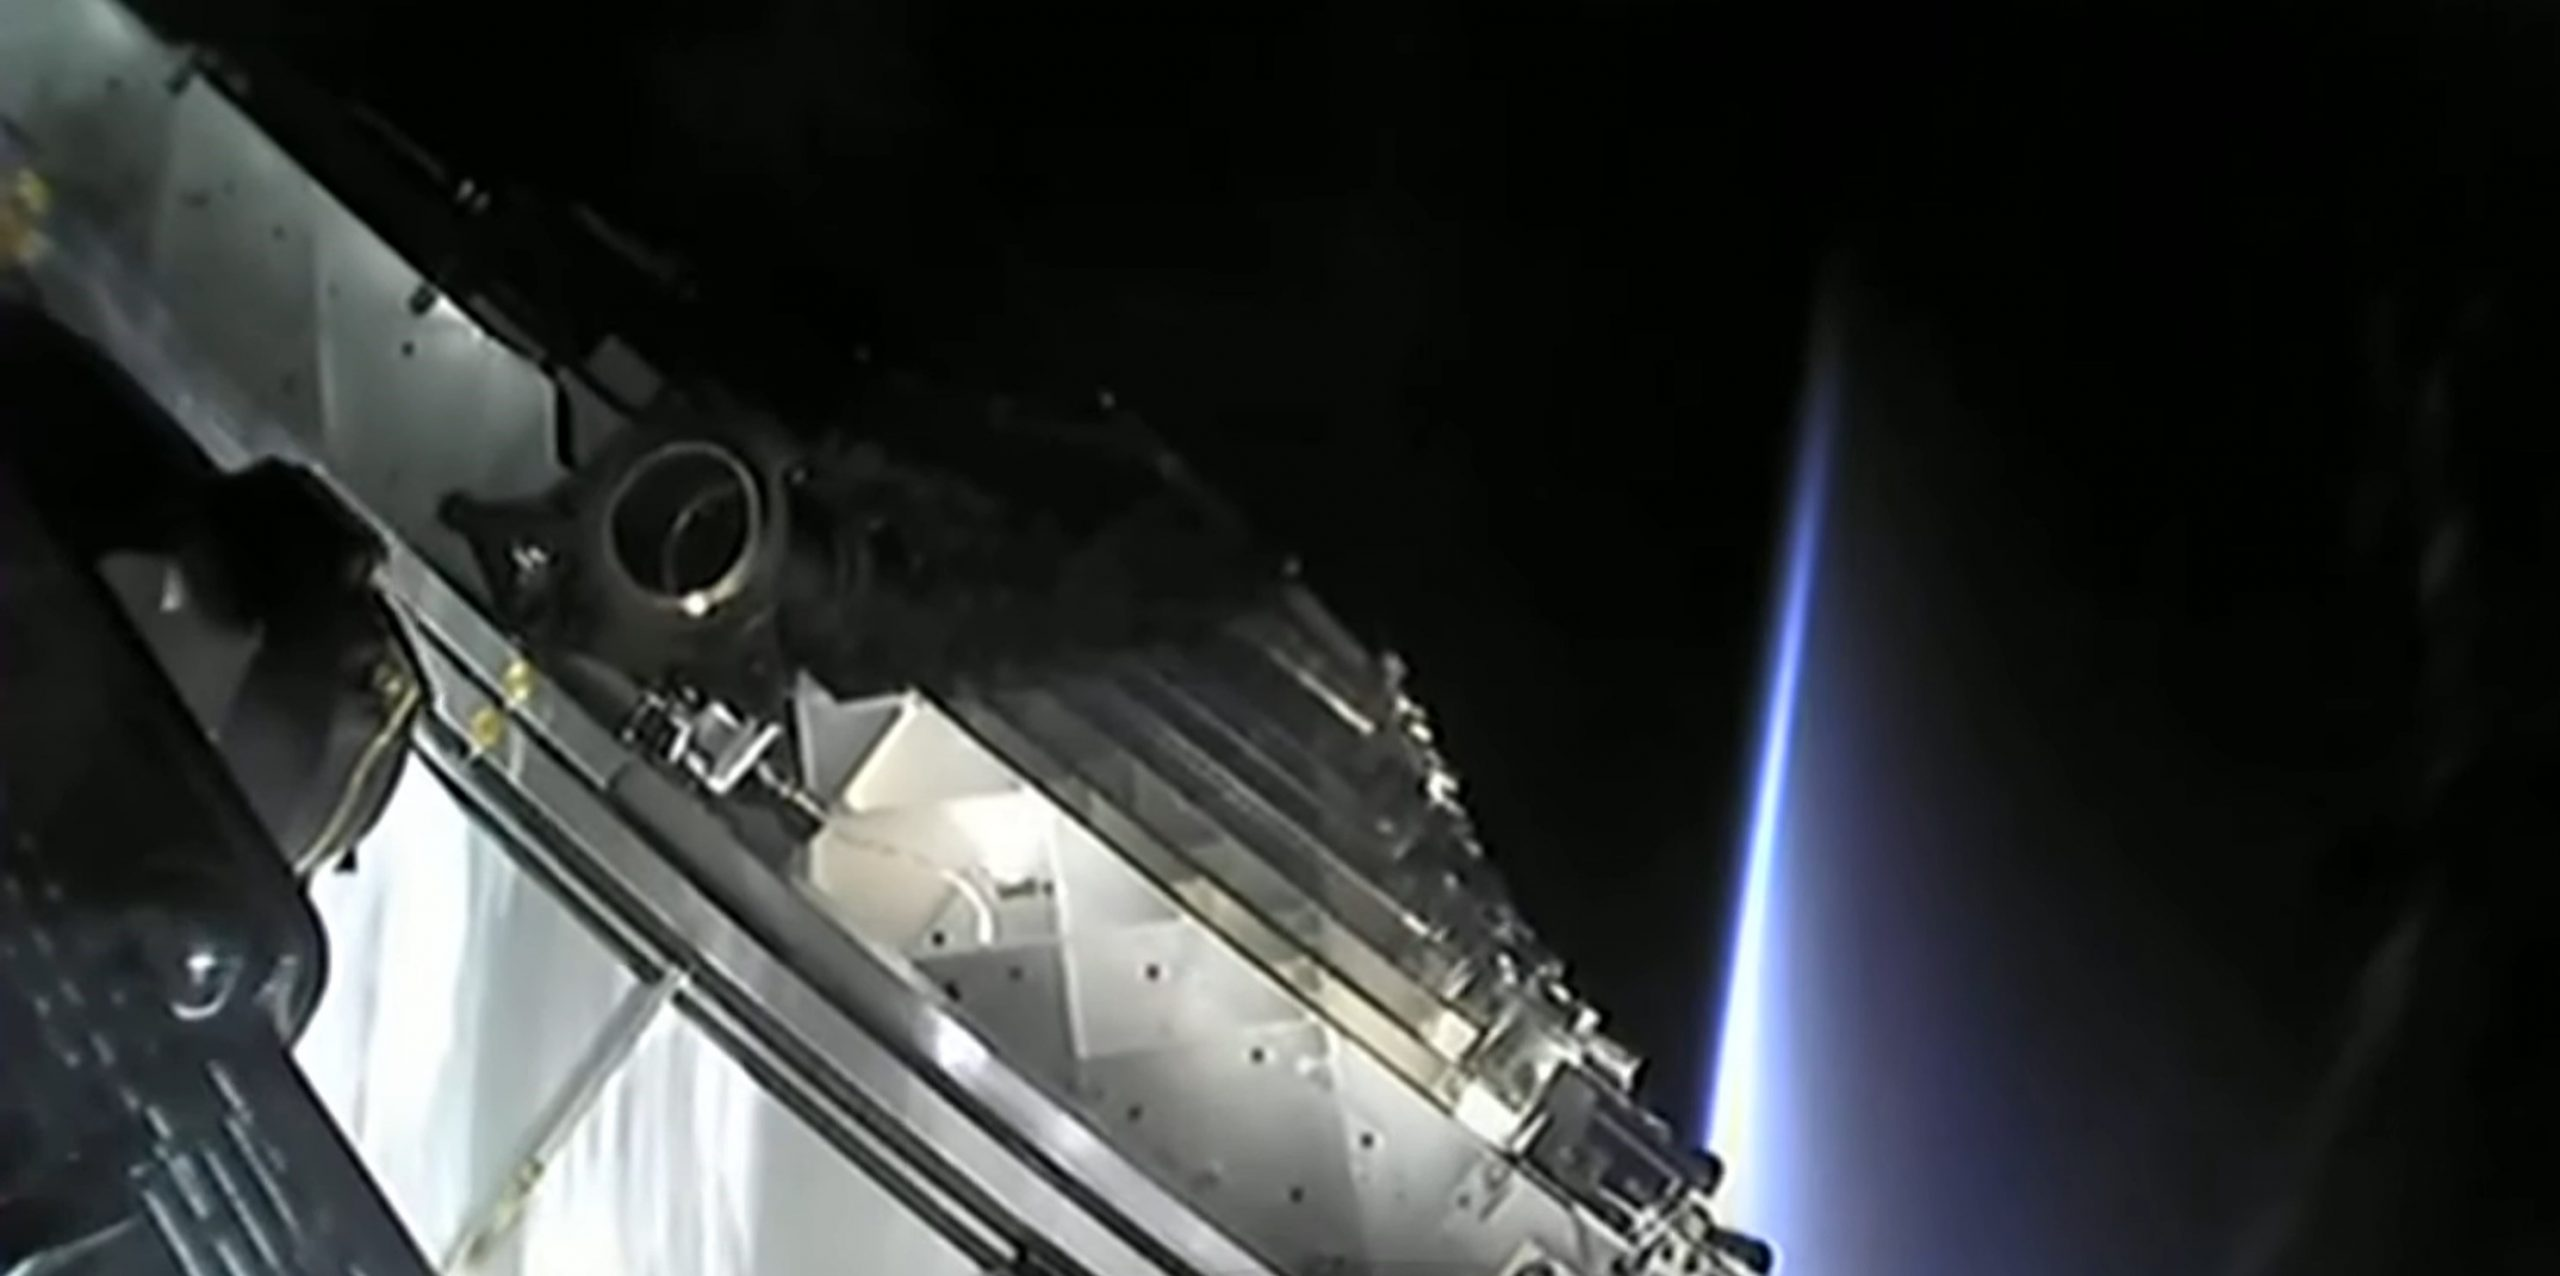 Starlink-25 Falcon 9 B1049 LC-39A 050421 webcast (SpaceX) stack 3 crop